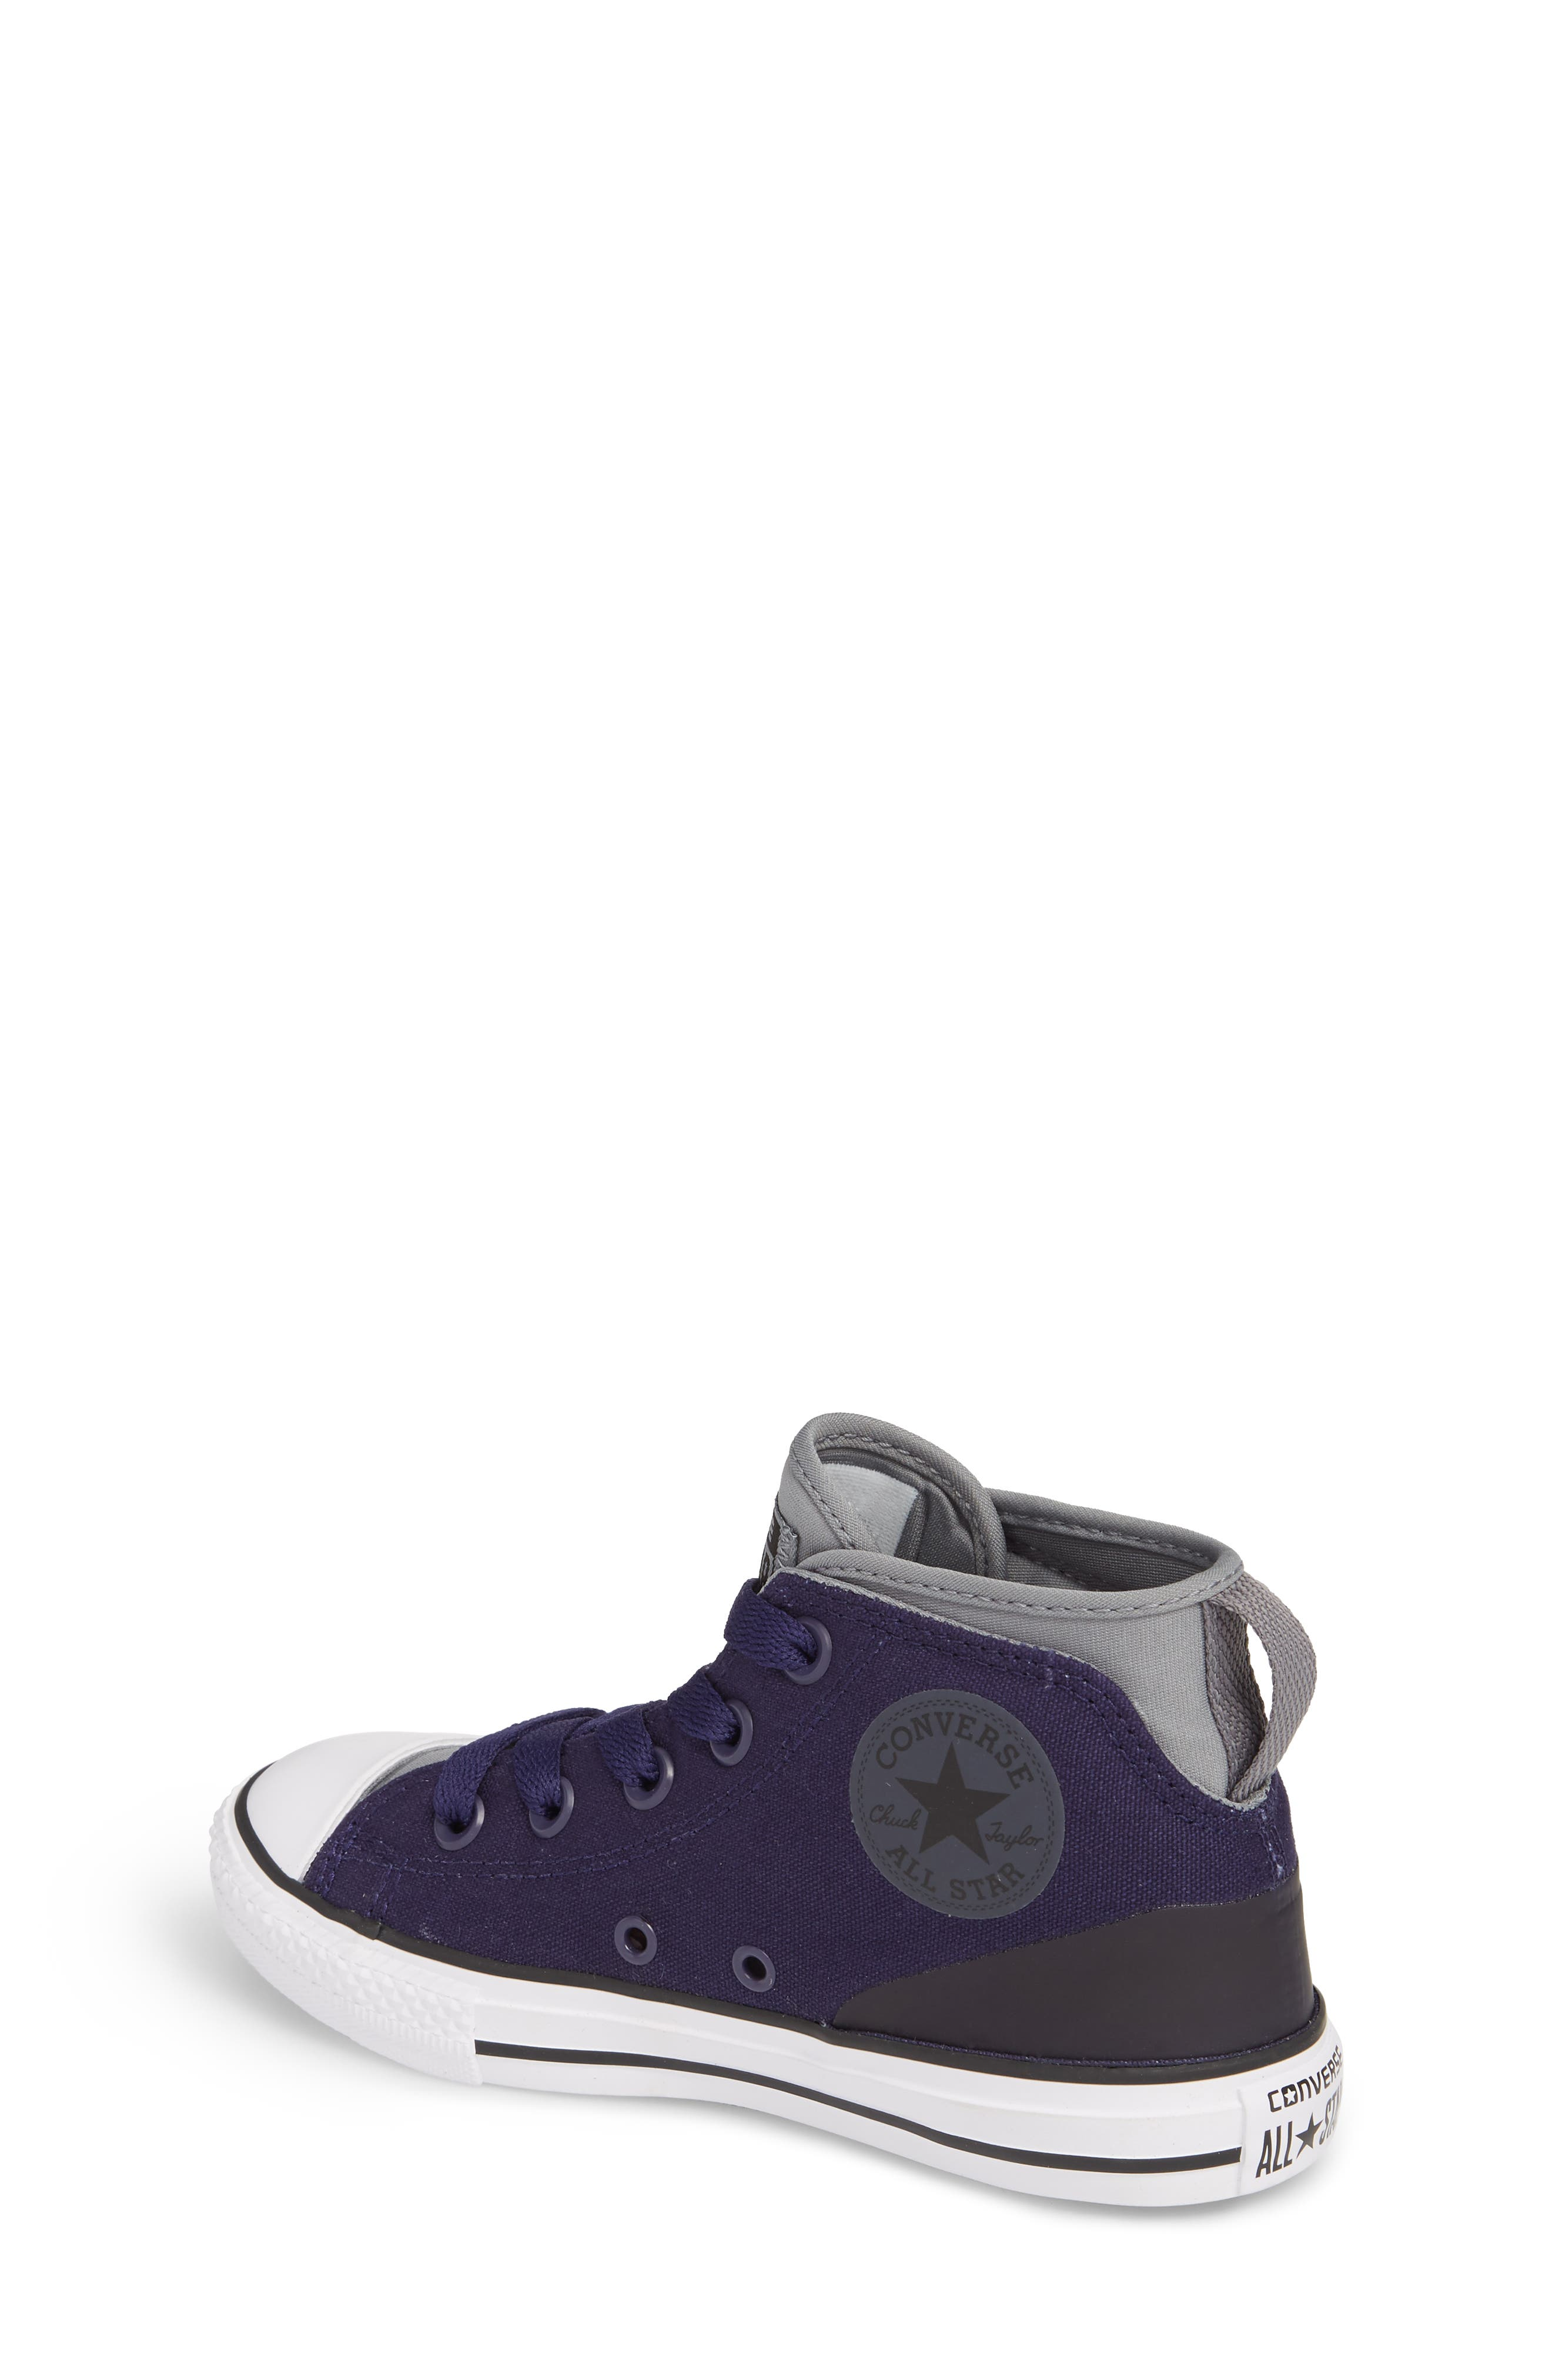 Chuck Taylor<sup>®</sup> All Star<sup>®</sup> Syde Street High Top Sneaker,                             Alternate thumbnail 2, color,                             401